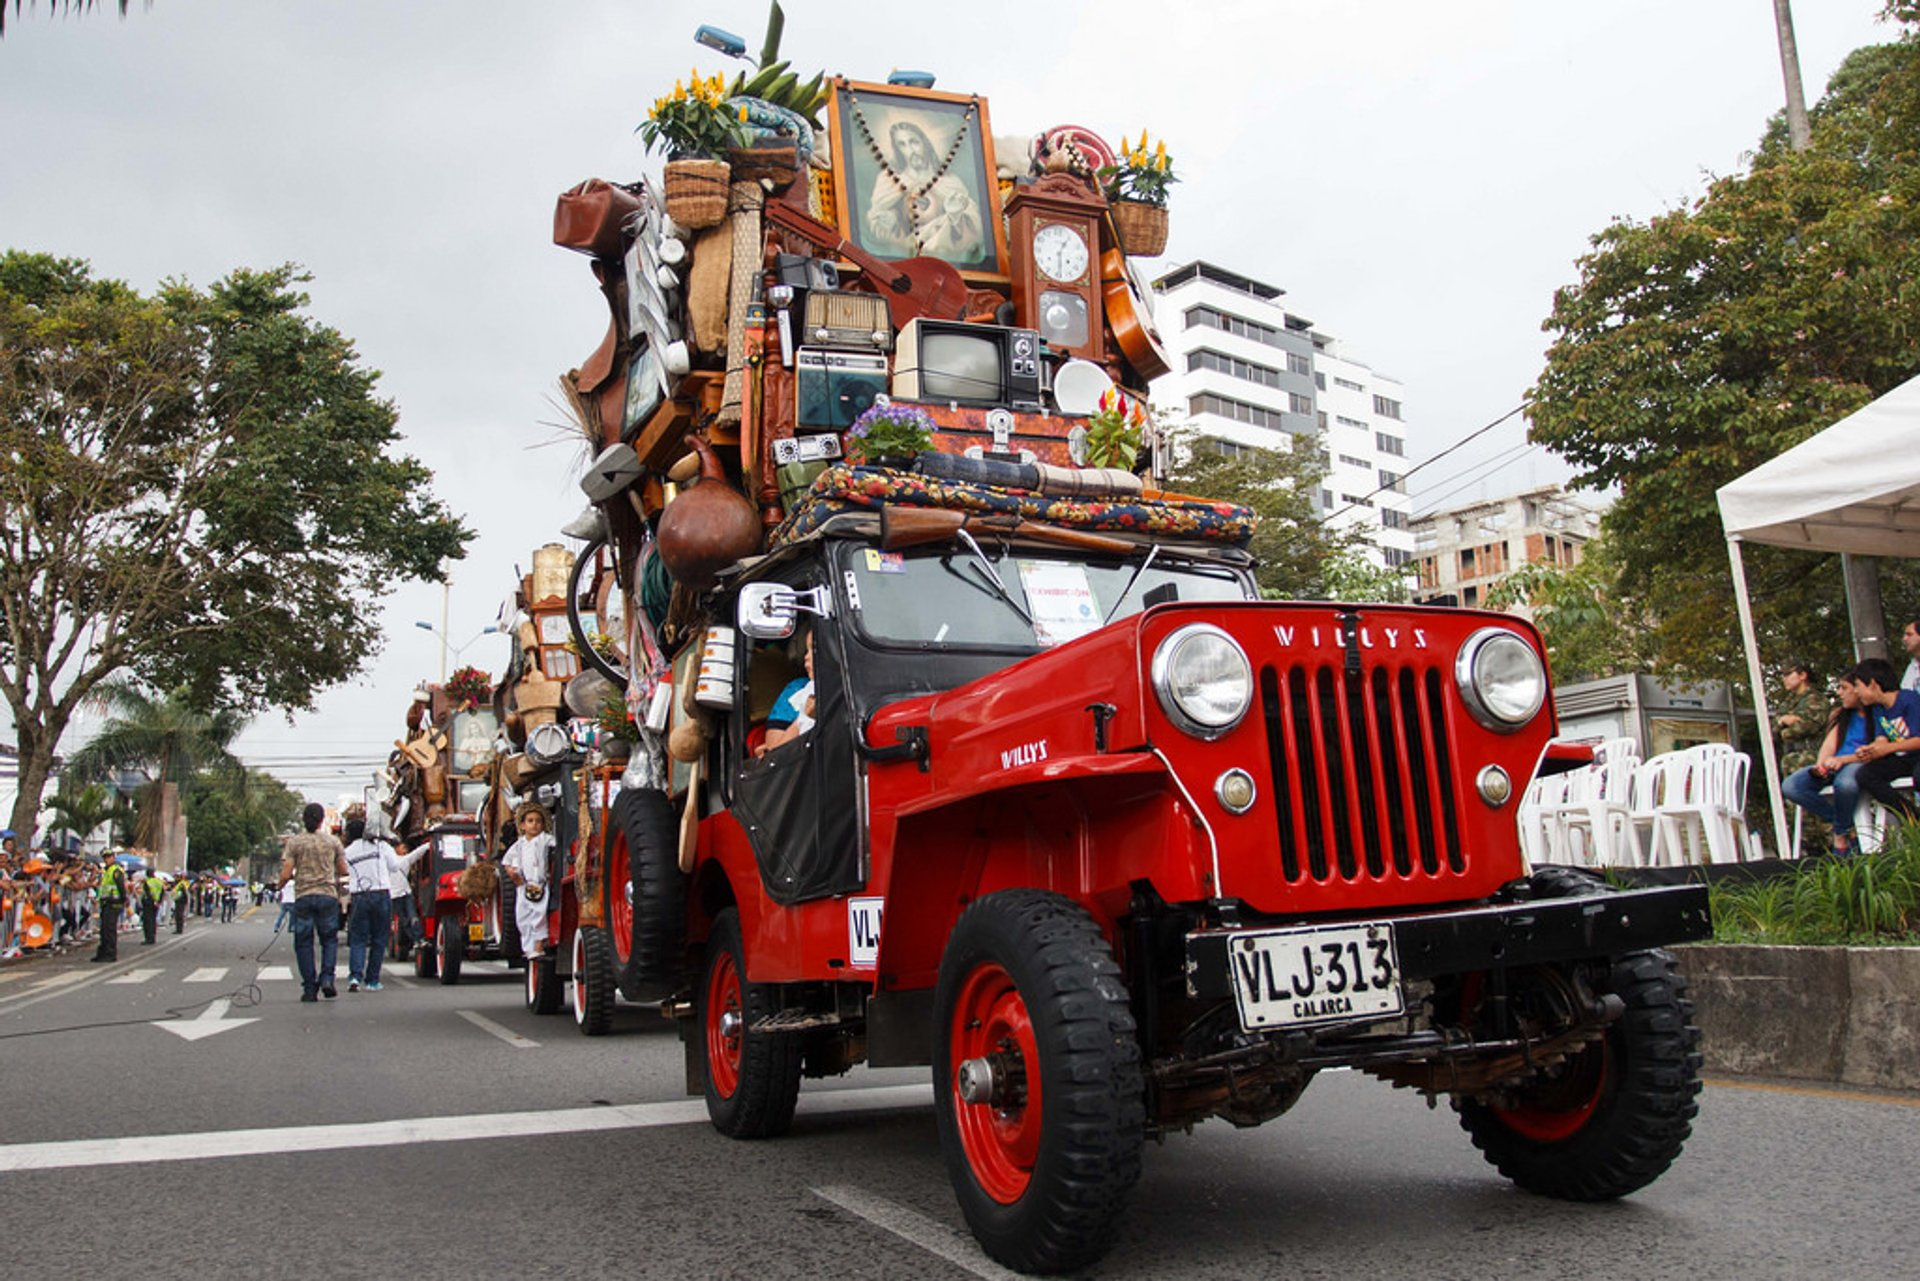 Yipao Parade in Colombia 2020 - Best Time